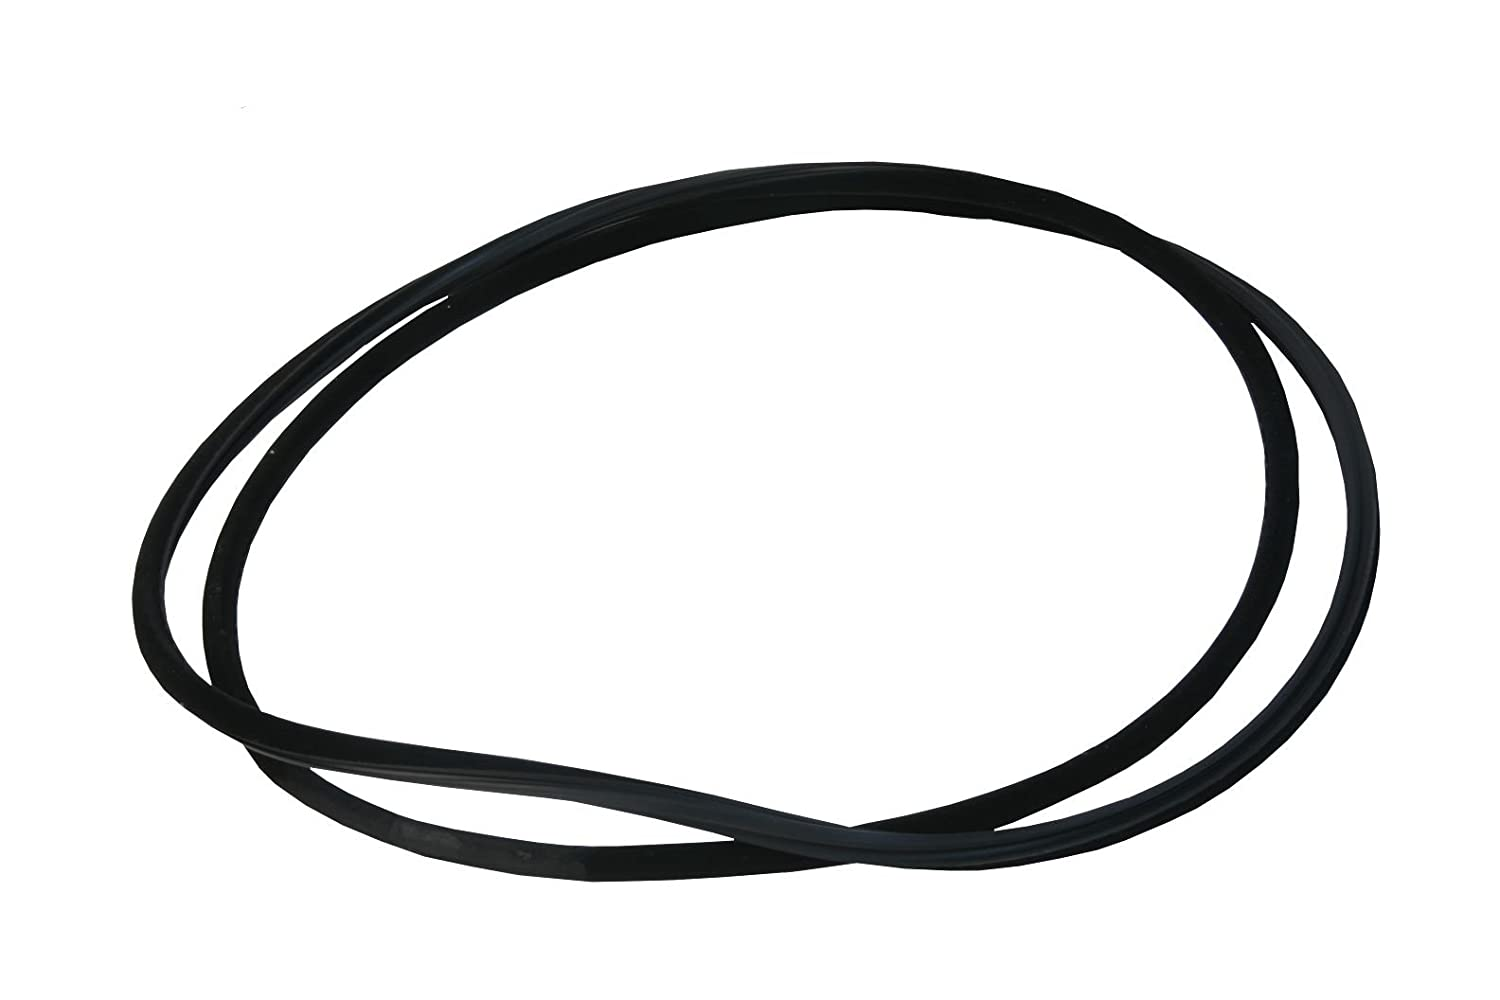 URO Parts 54 13 8 218 001 Sunroof Seal